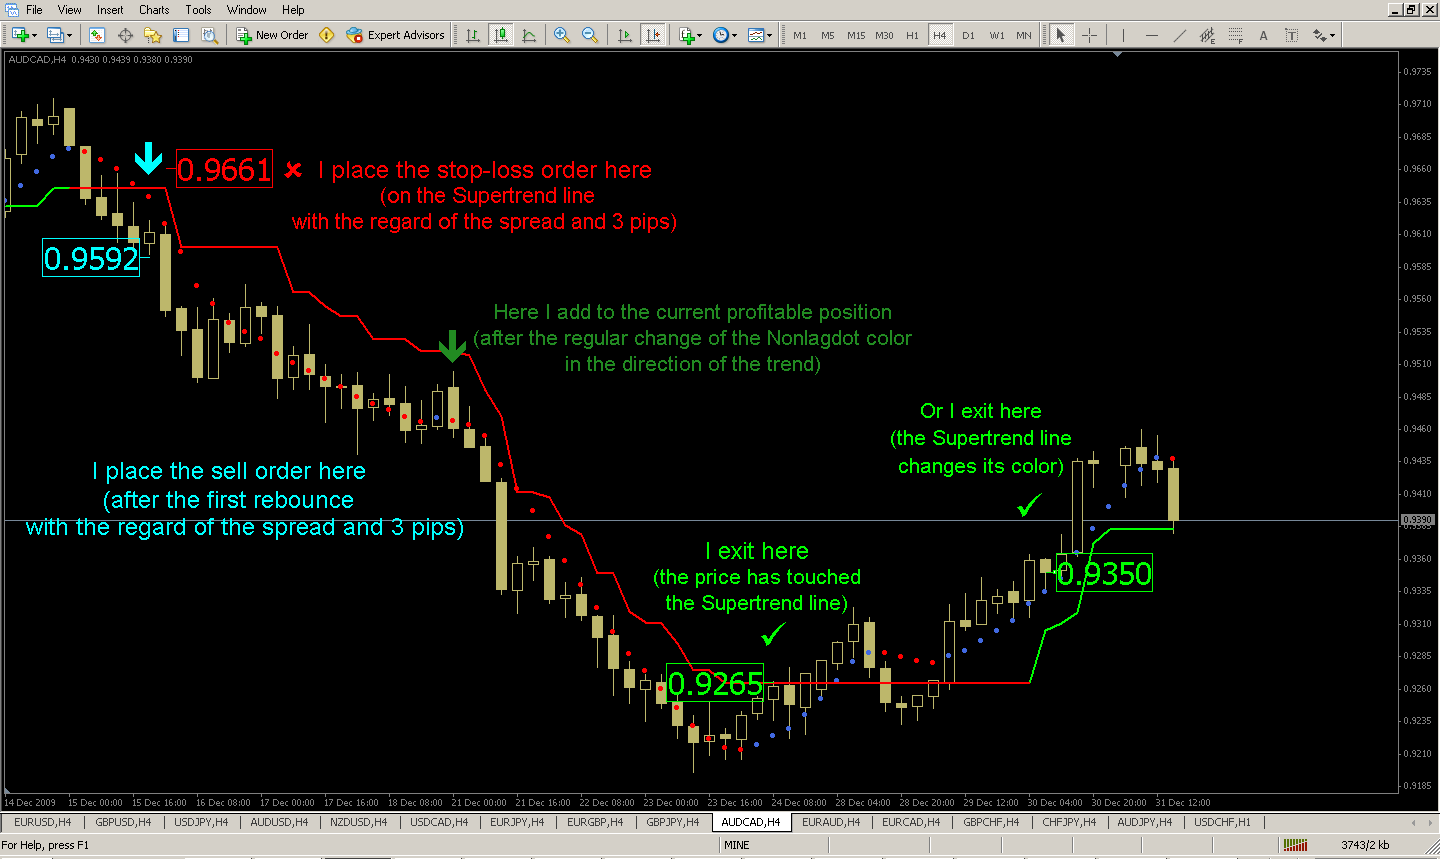 Ya trading strategie 5 minutes